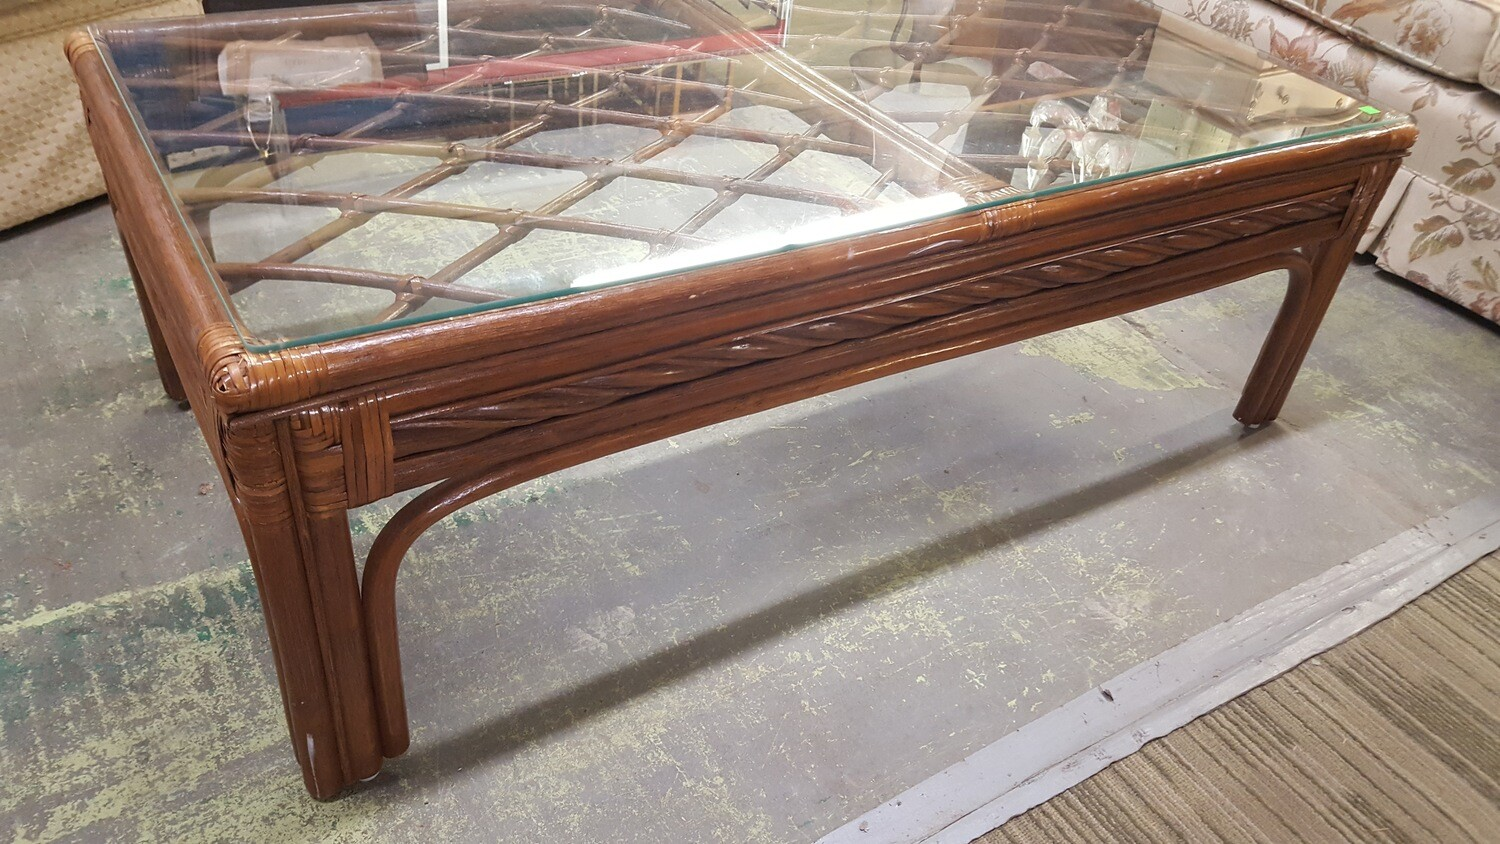 Rattan Coffee Table with glass top (GR)